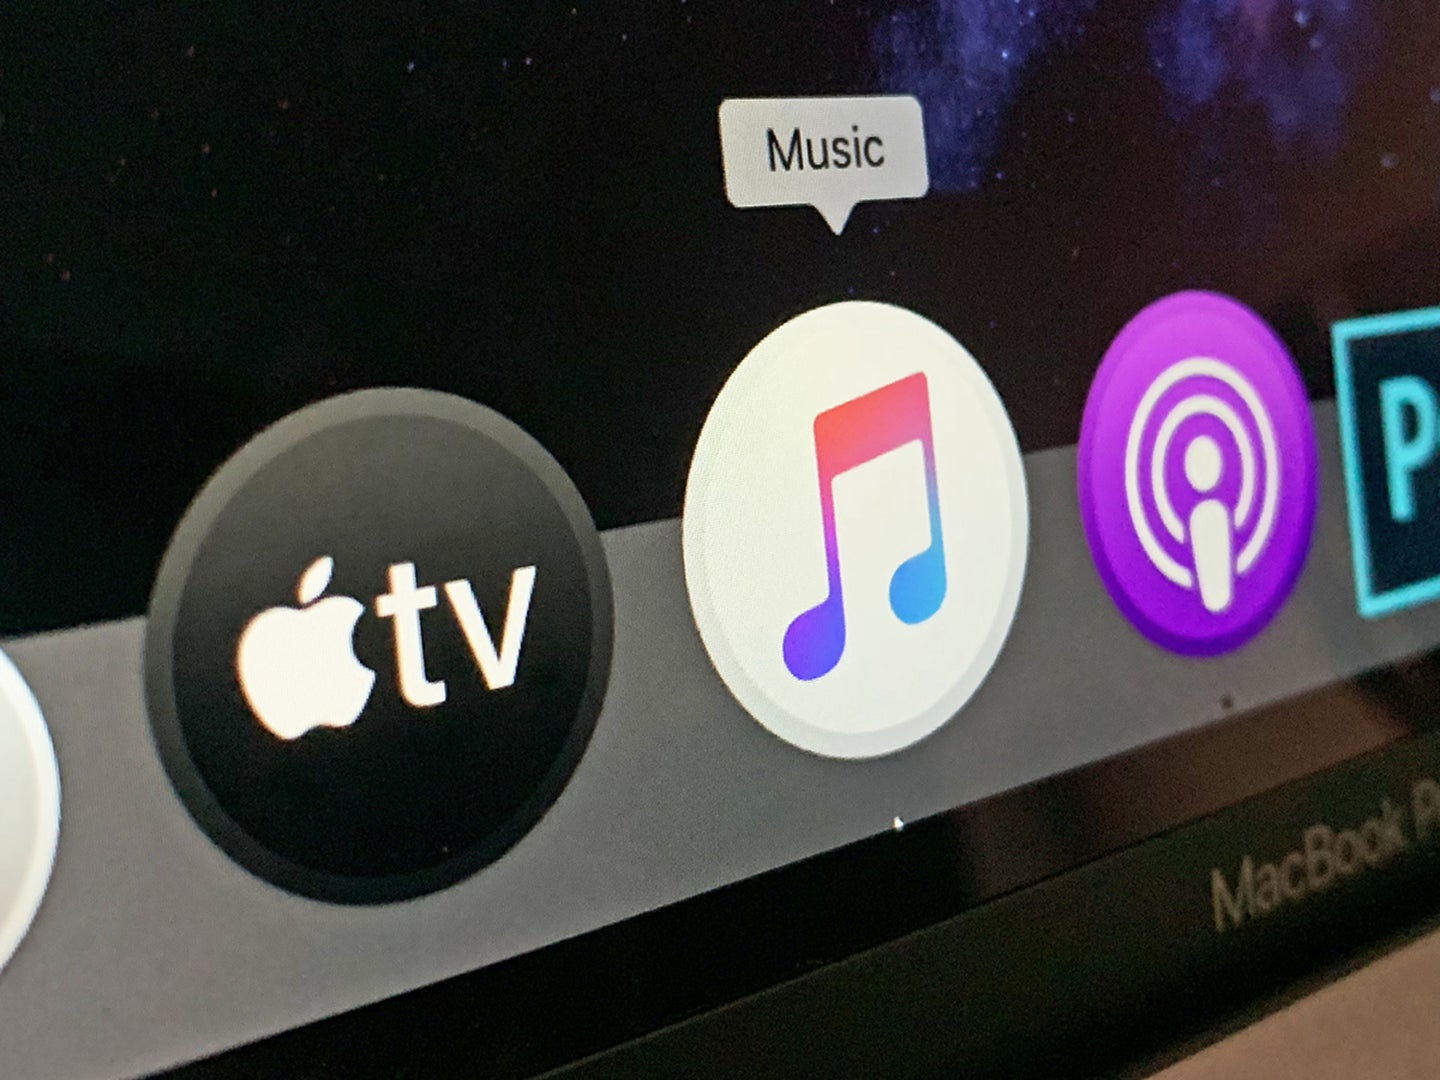 Icons for Music, TV, and Podcasts apps on Macos